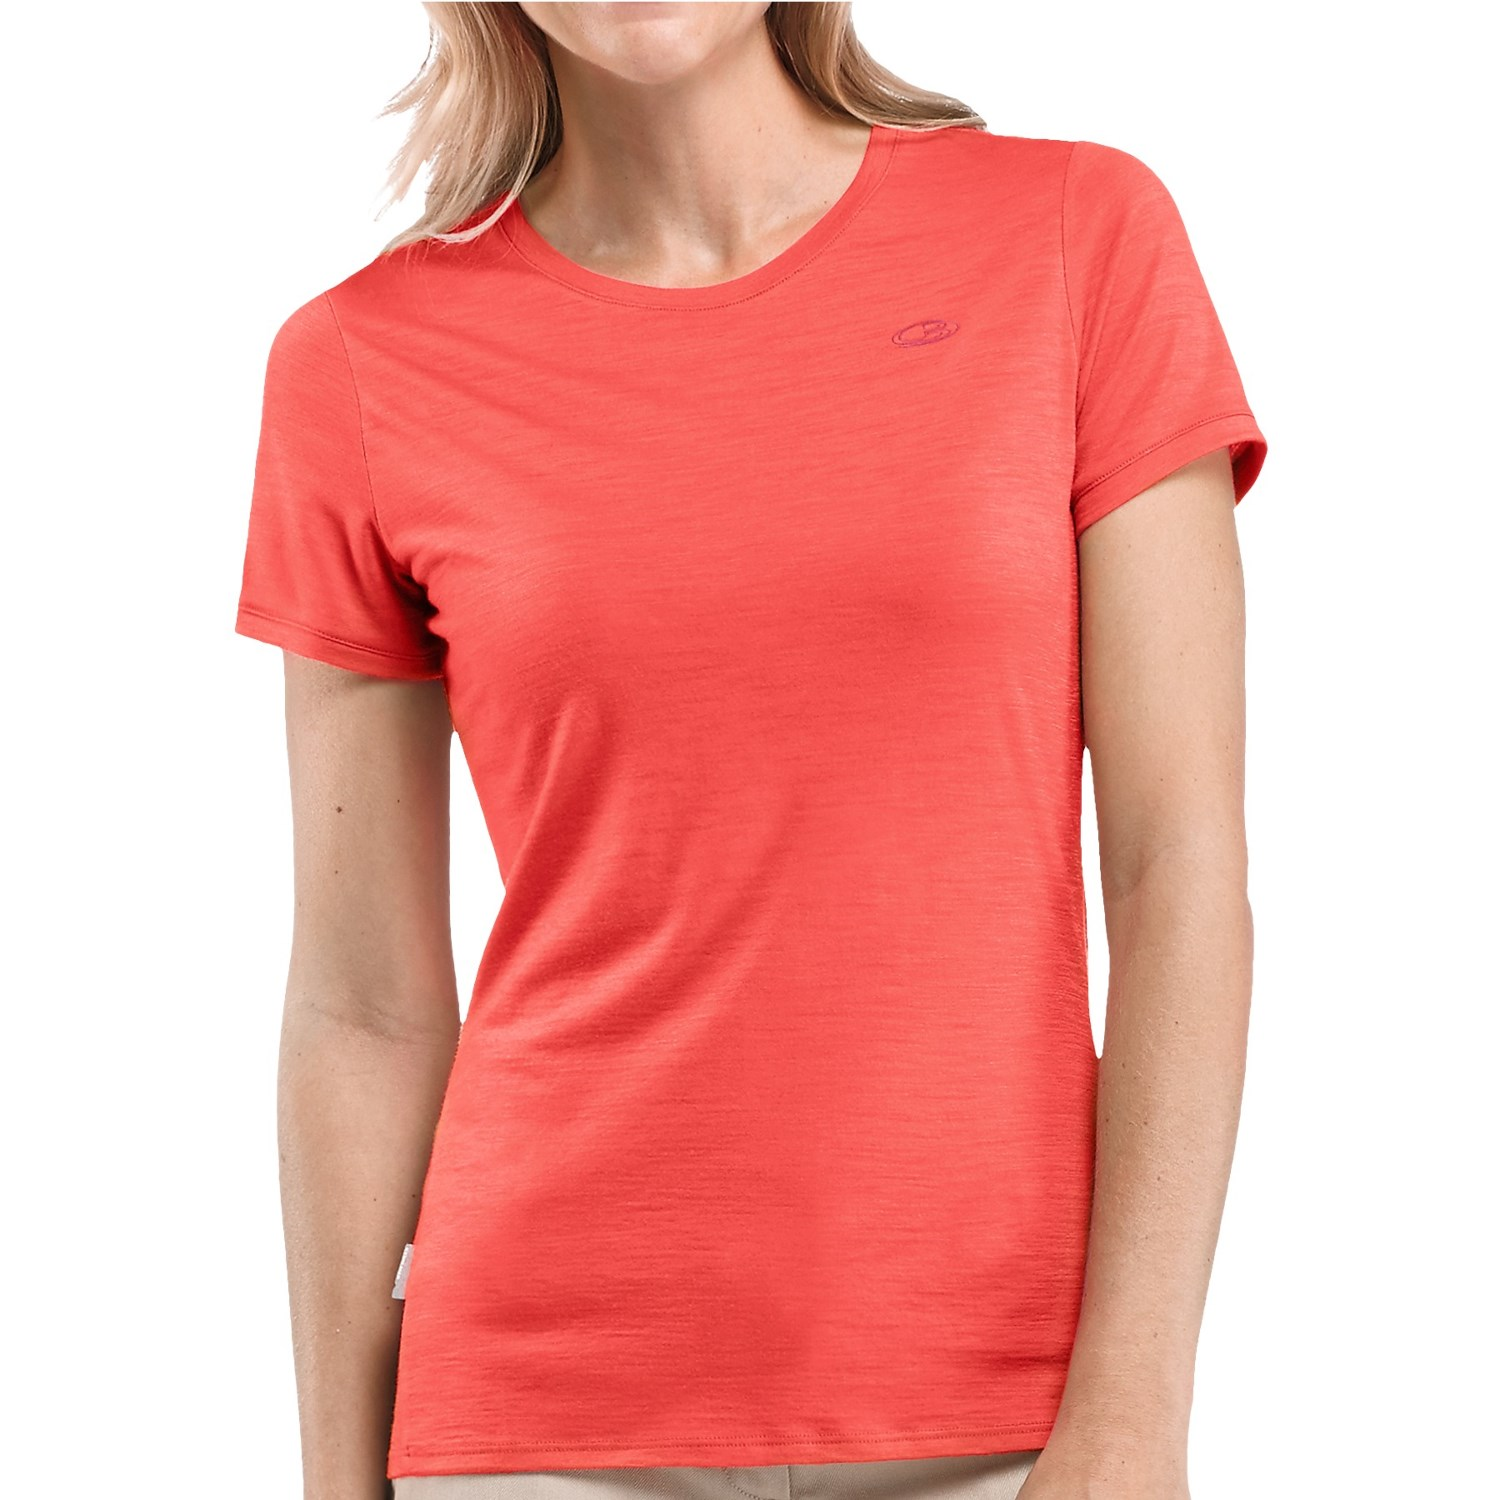 Icebreaker tech lightweight upf 30 t shirt for women for Merino wool shirts for travel